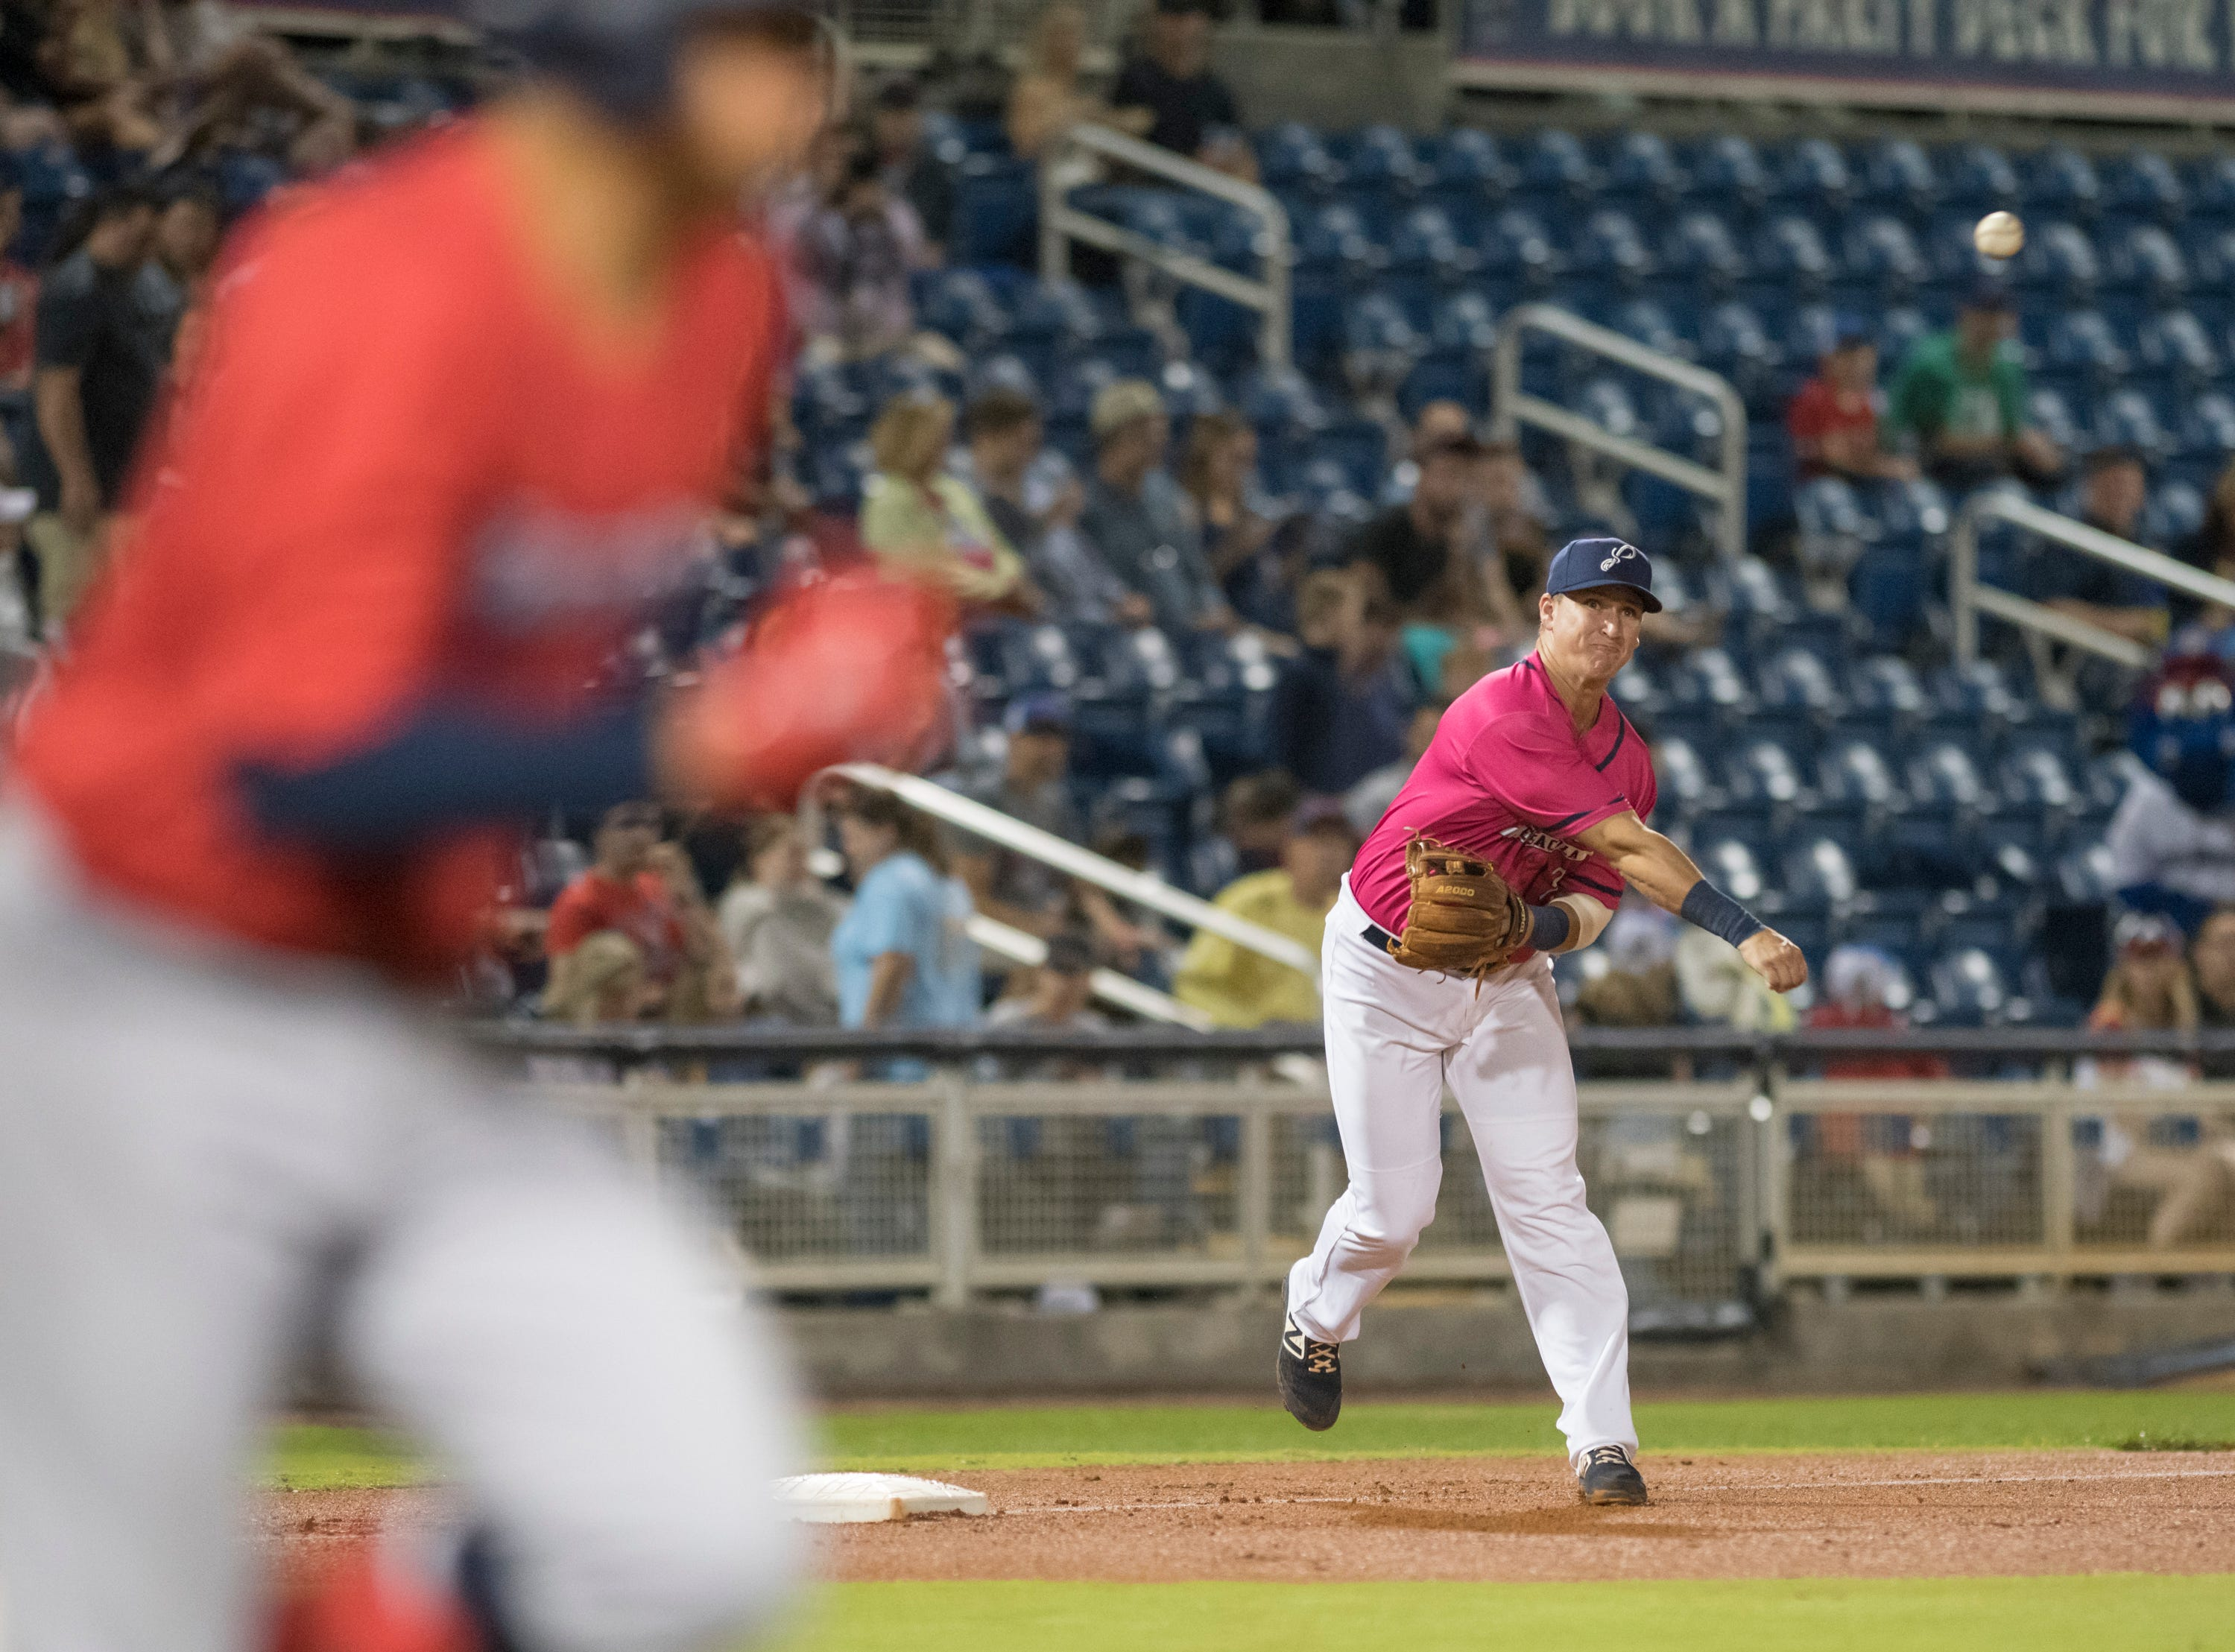 Third baseman Brian Schales (9) throws to first for an out during the Jacksonville Jumbo Shrimp vs Pensacola Blue Wahoos baseball game in Pensacola on Friday, April 12, 2019.